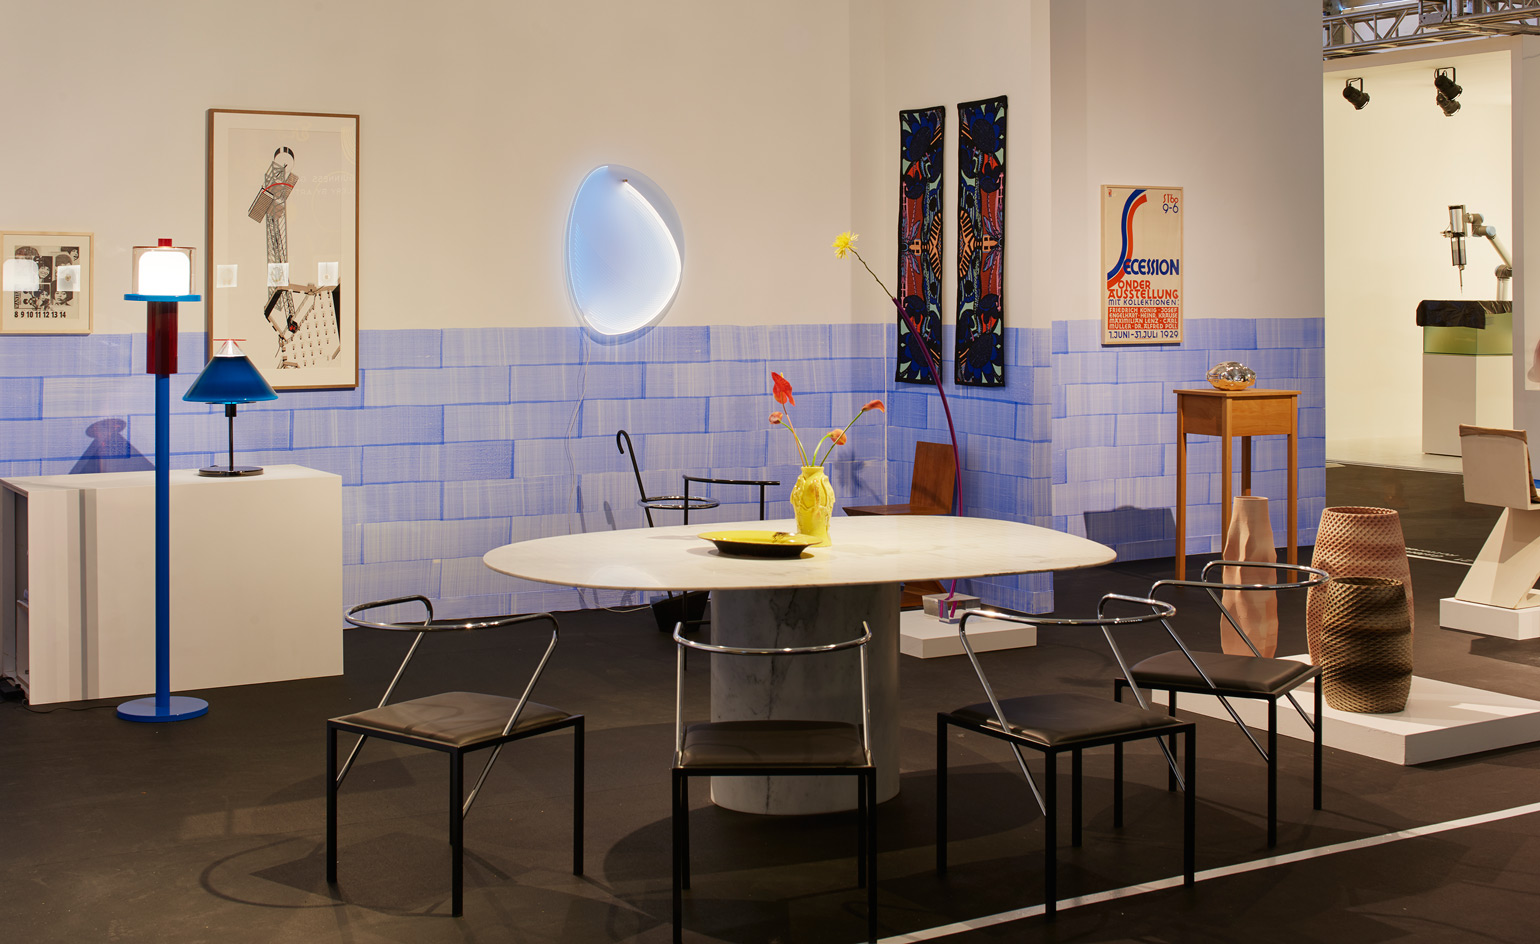 Rotterdam-based Galerie Vivid featured work by the likes of Sebastian Wrong, Ettore Sottsass and Olivier van Herpt this year. Highlights include Scholten & Baijing's geometric marble tables and Mies van der Rohe's 1923 'MR10' chair.